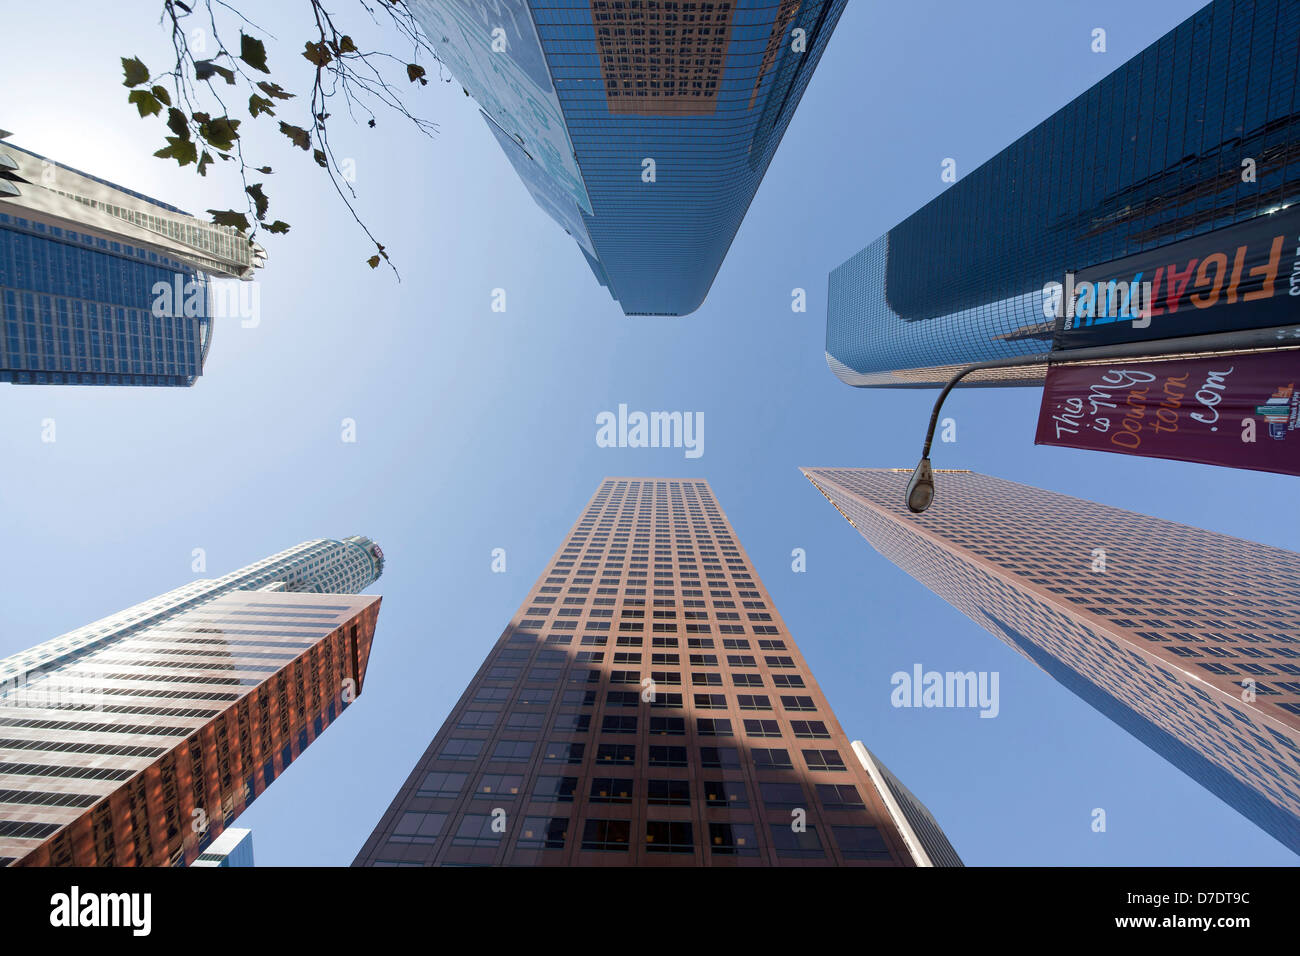 Worm's-eye view of Downtown Los Angeles skyscrapers, California, United States of America, USA - Stock Image